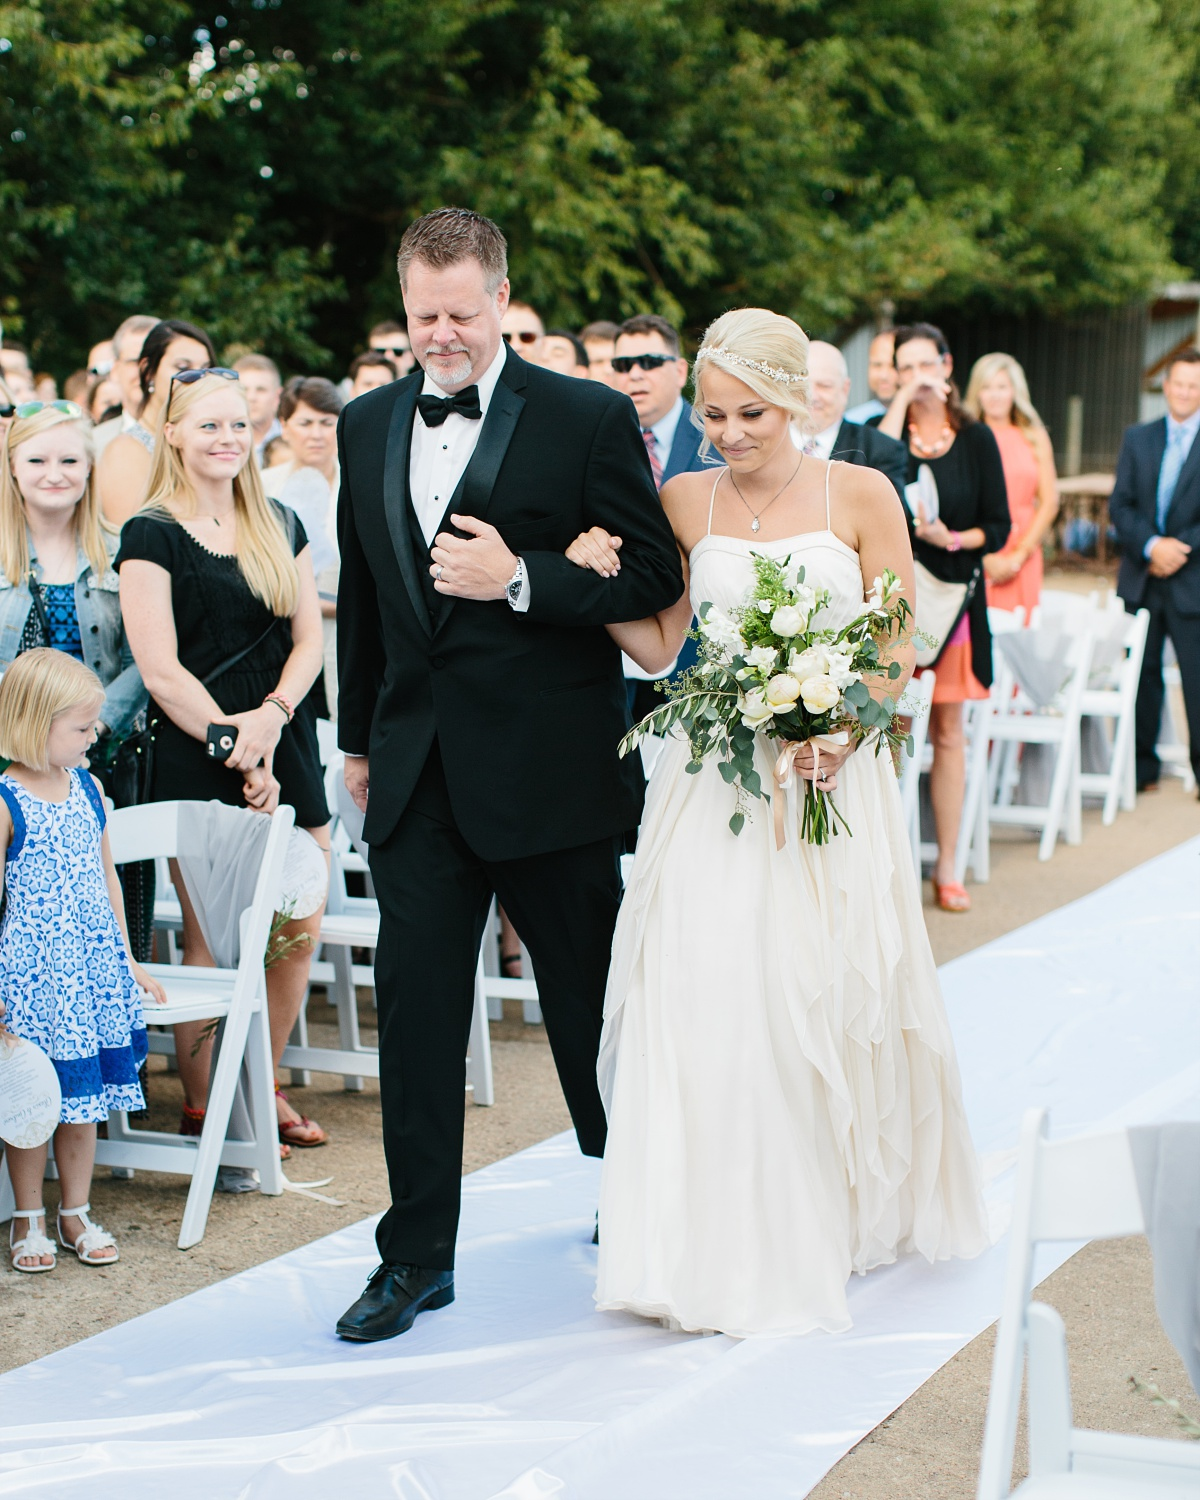 Dad walks his daughter down the aisle of outdoor wedding